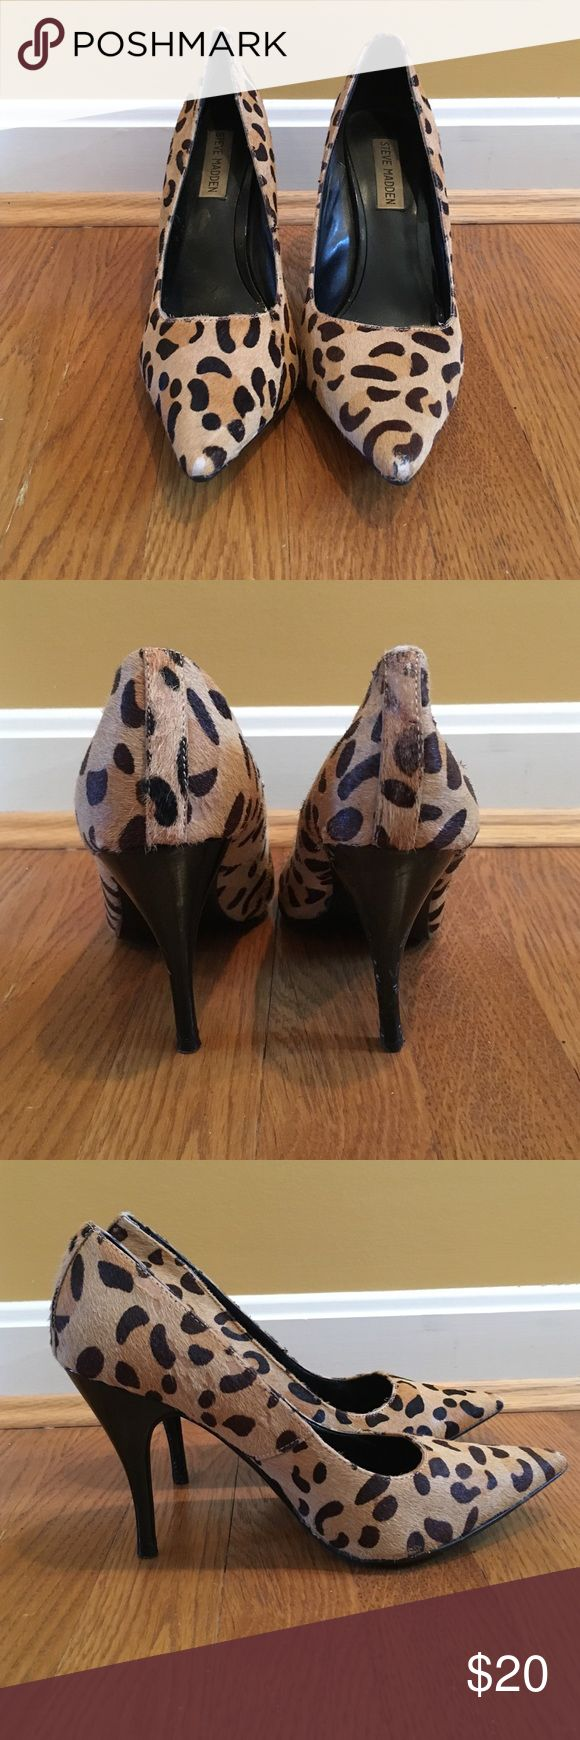 Steve Madden cheetah heels Steve Madden cheetah 3 inch heels. Cheetah print and faux fur on outside. Very comfortable. Good condition. Bite marks from dog on right heel. Doesn't effect shoes use and not noticeable when wearing. Size 8.5 Steve Madden Shoes Heels